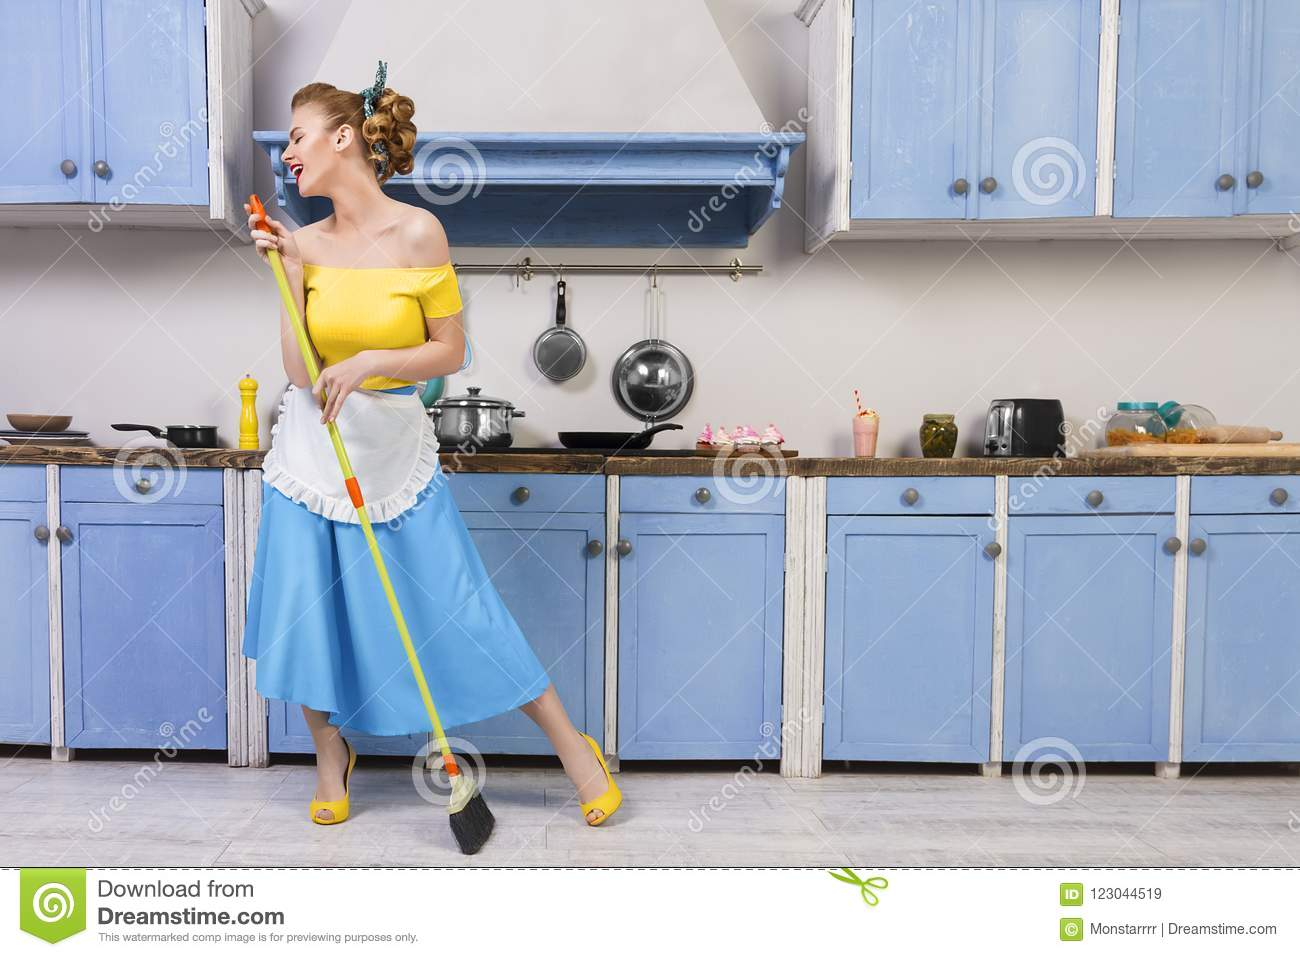 Retro Pin Up Girl Housewife In The Kitchen Stock Image - Image of ...